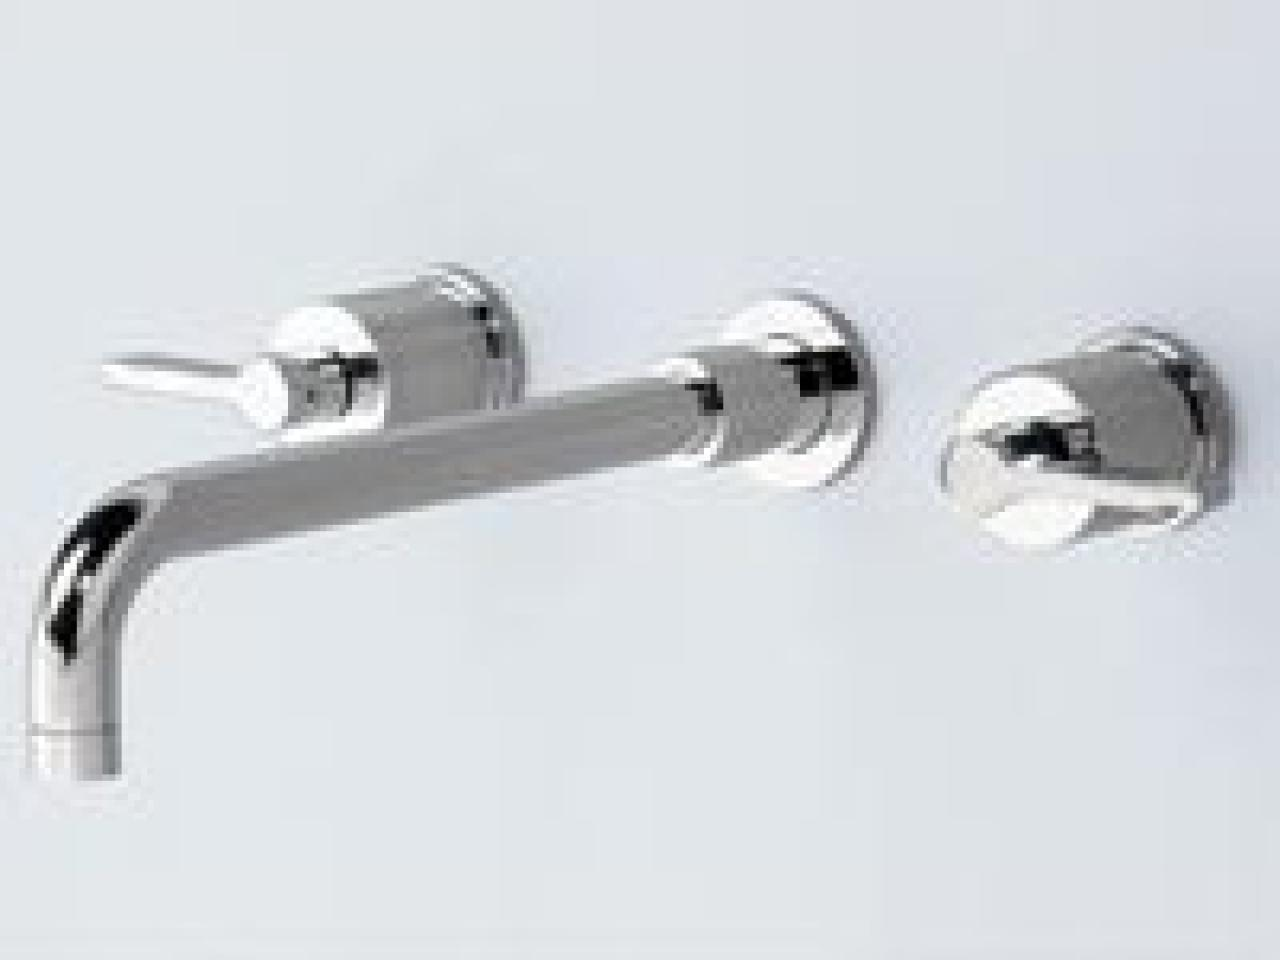 First Things First  bathtub faucet buyers bathrk 1. Bathtub Faucet Buyer s Guide   HGTV